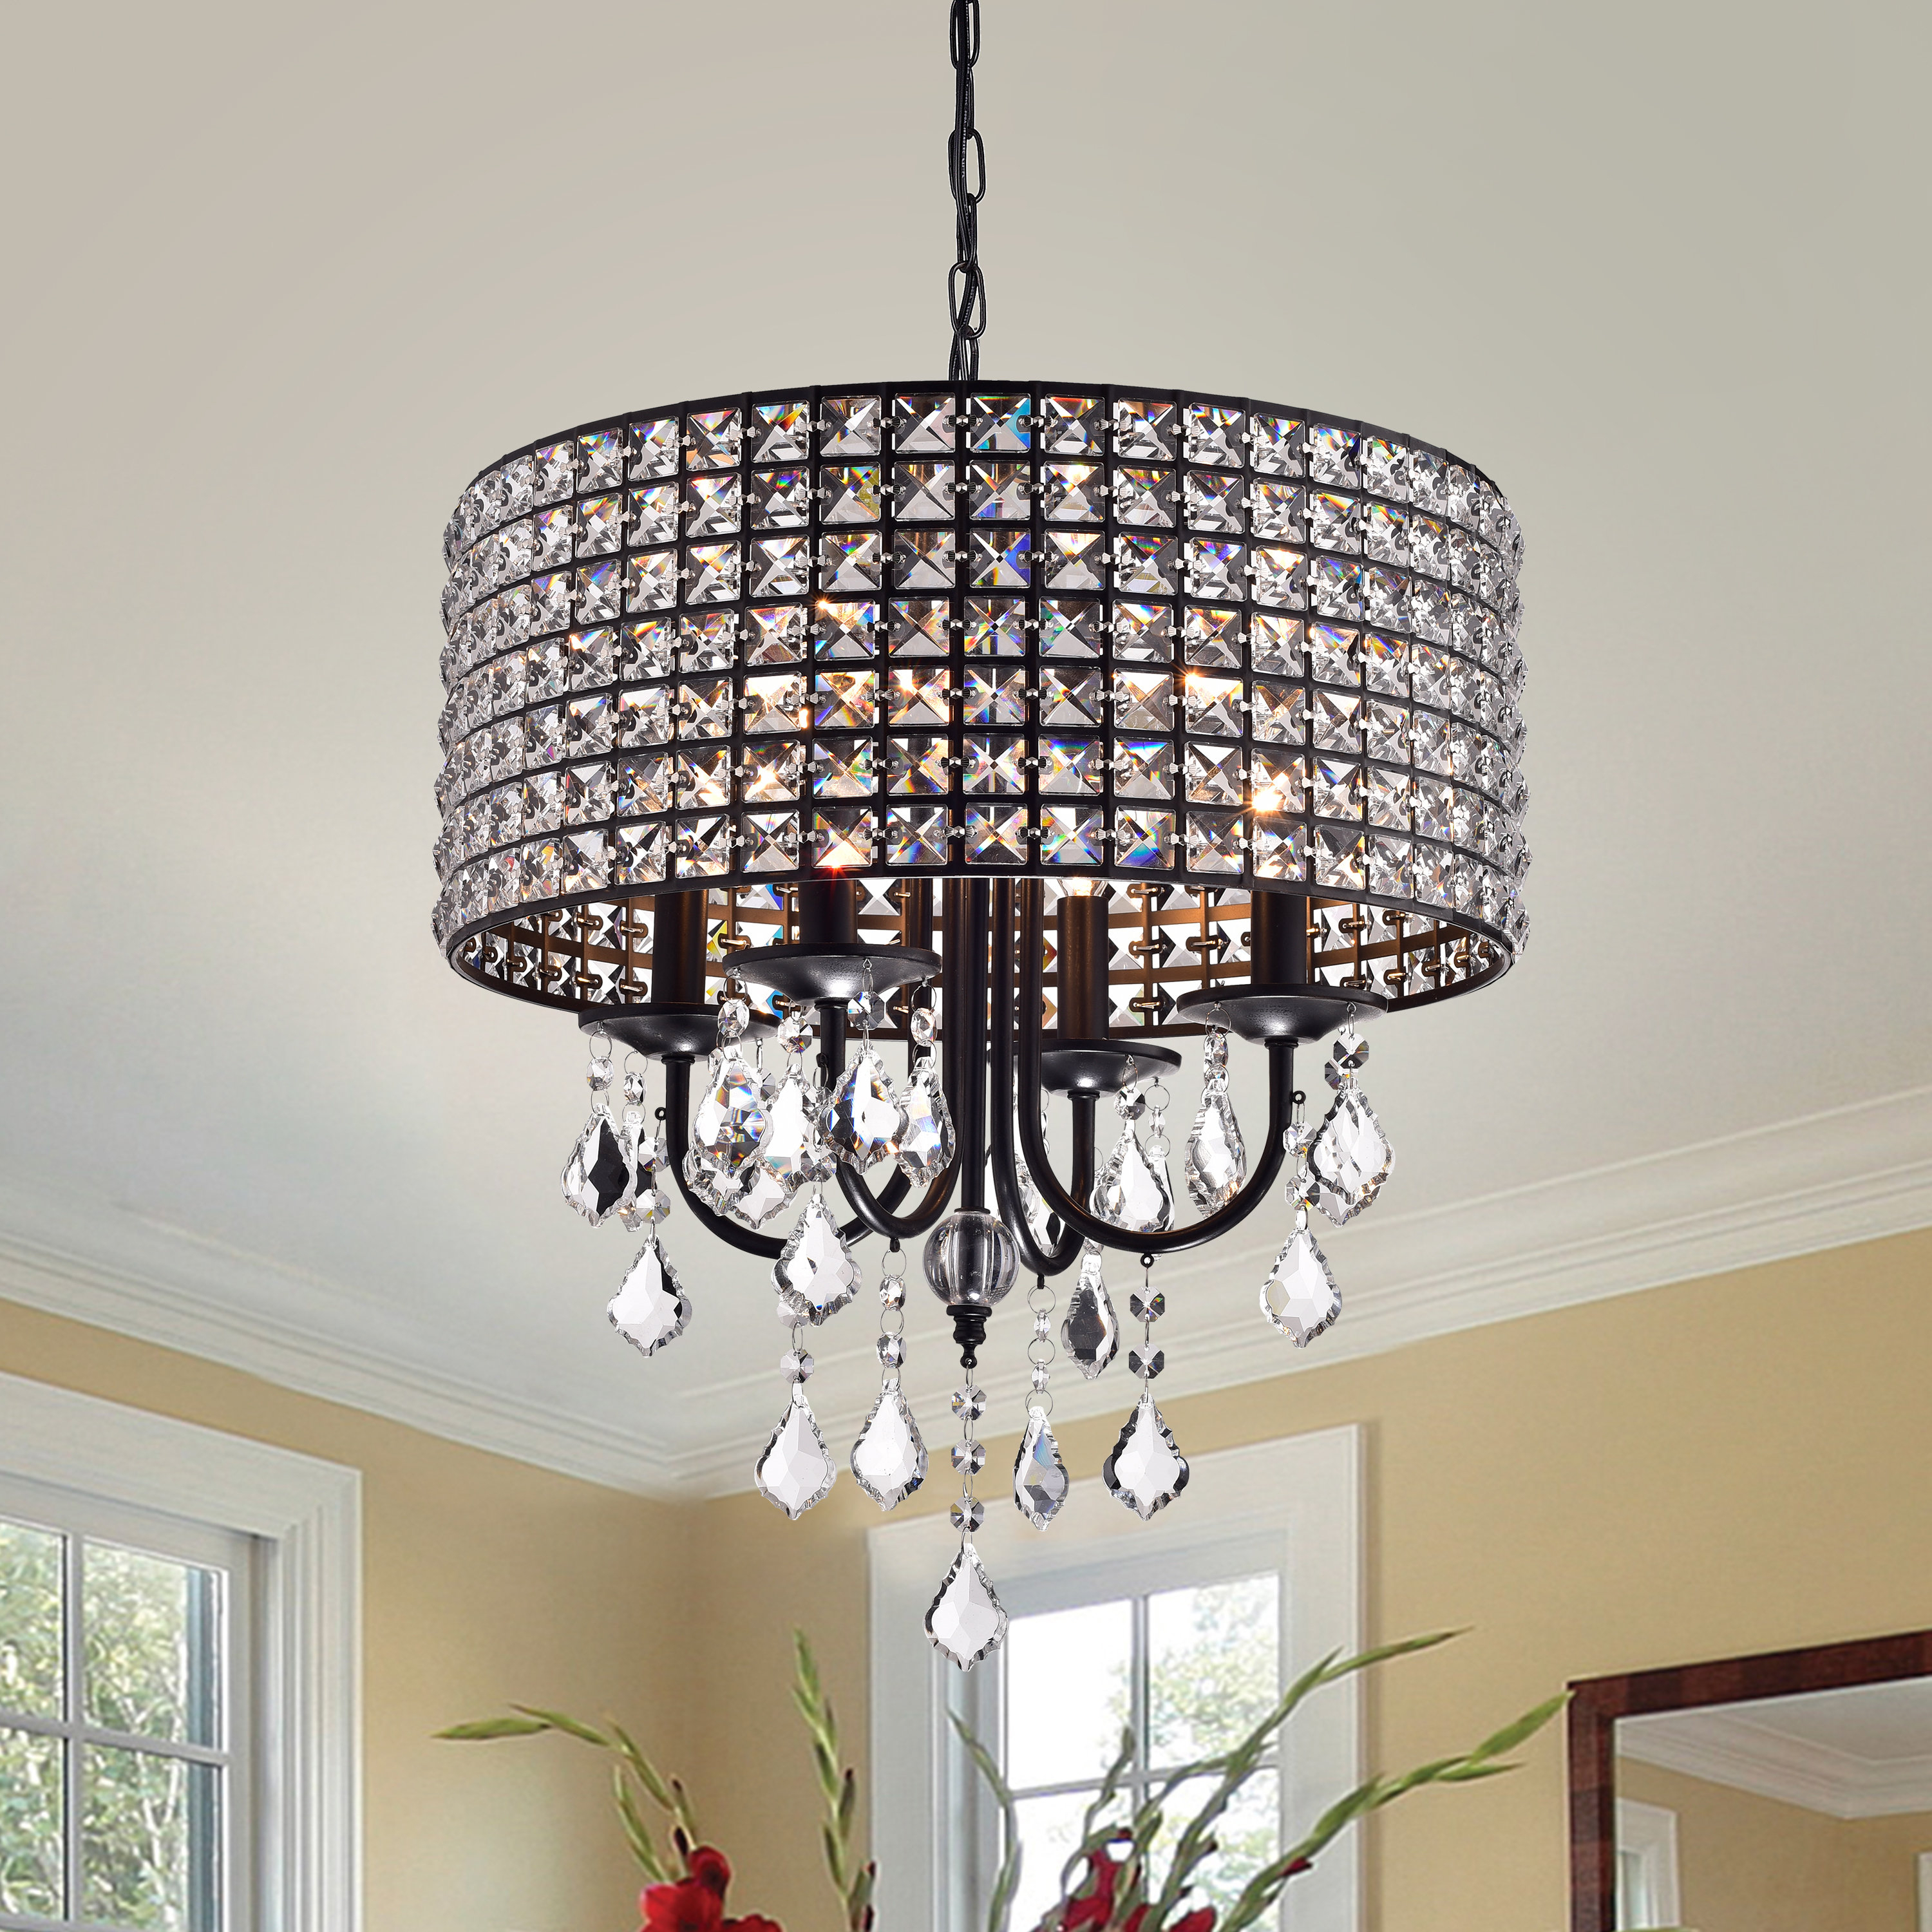 Widely Used Sinead 4 Light Chandeliers Throughout Albano 4 Light Crystal Chandelier (View 3 of 25)